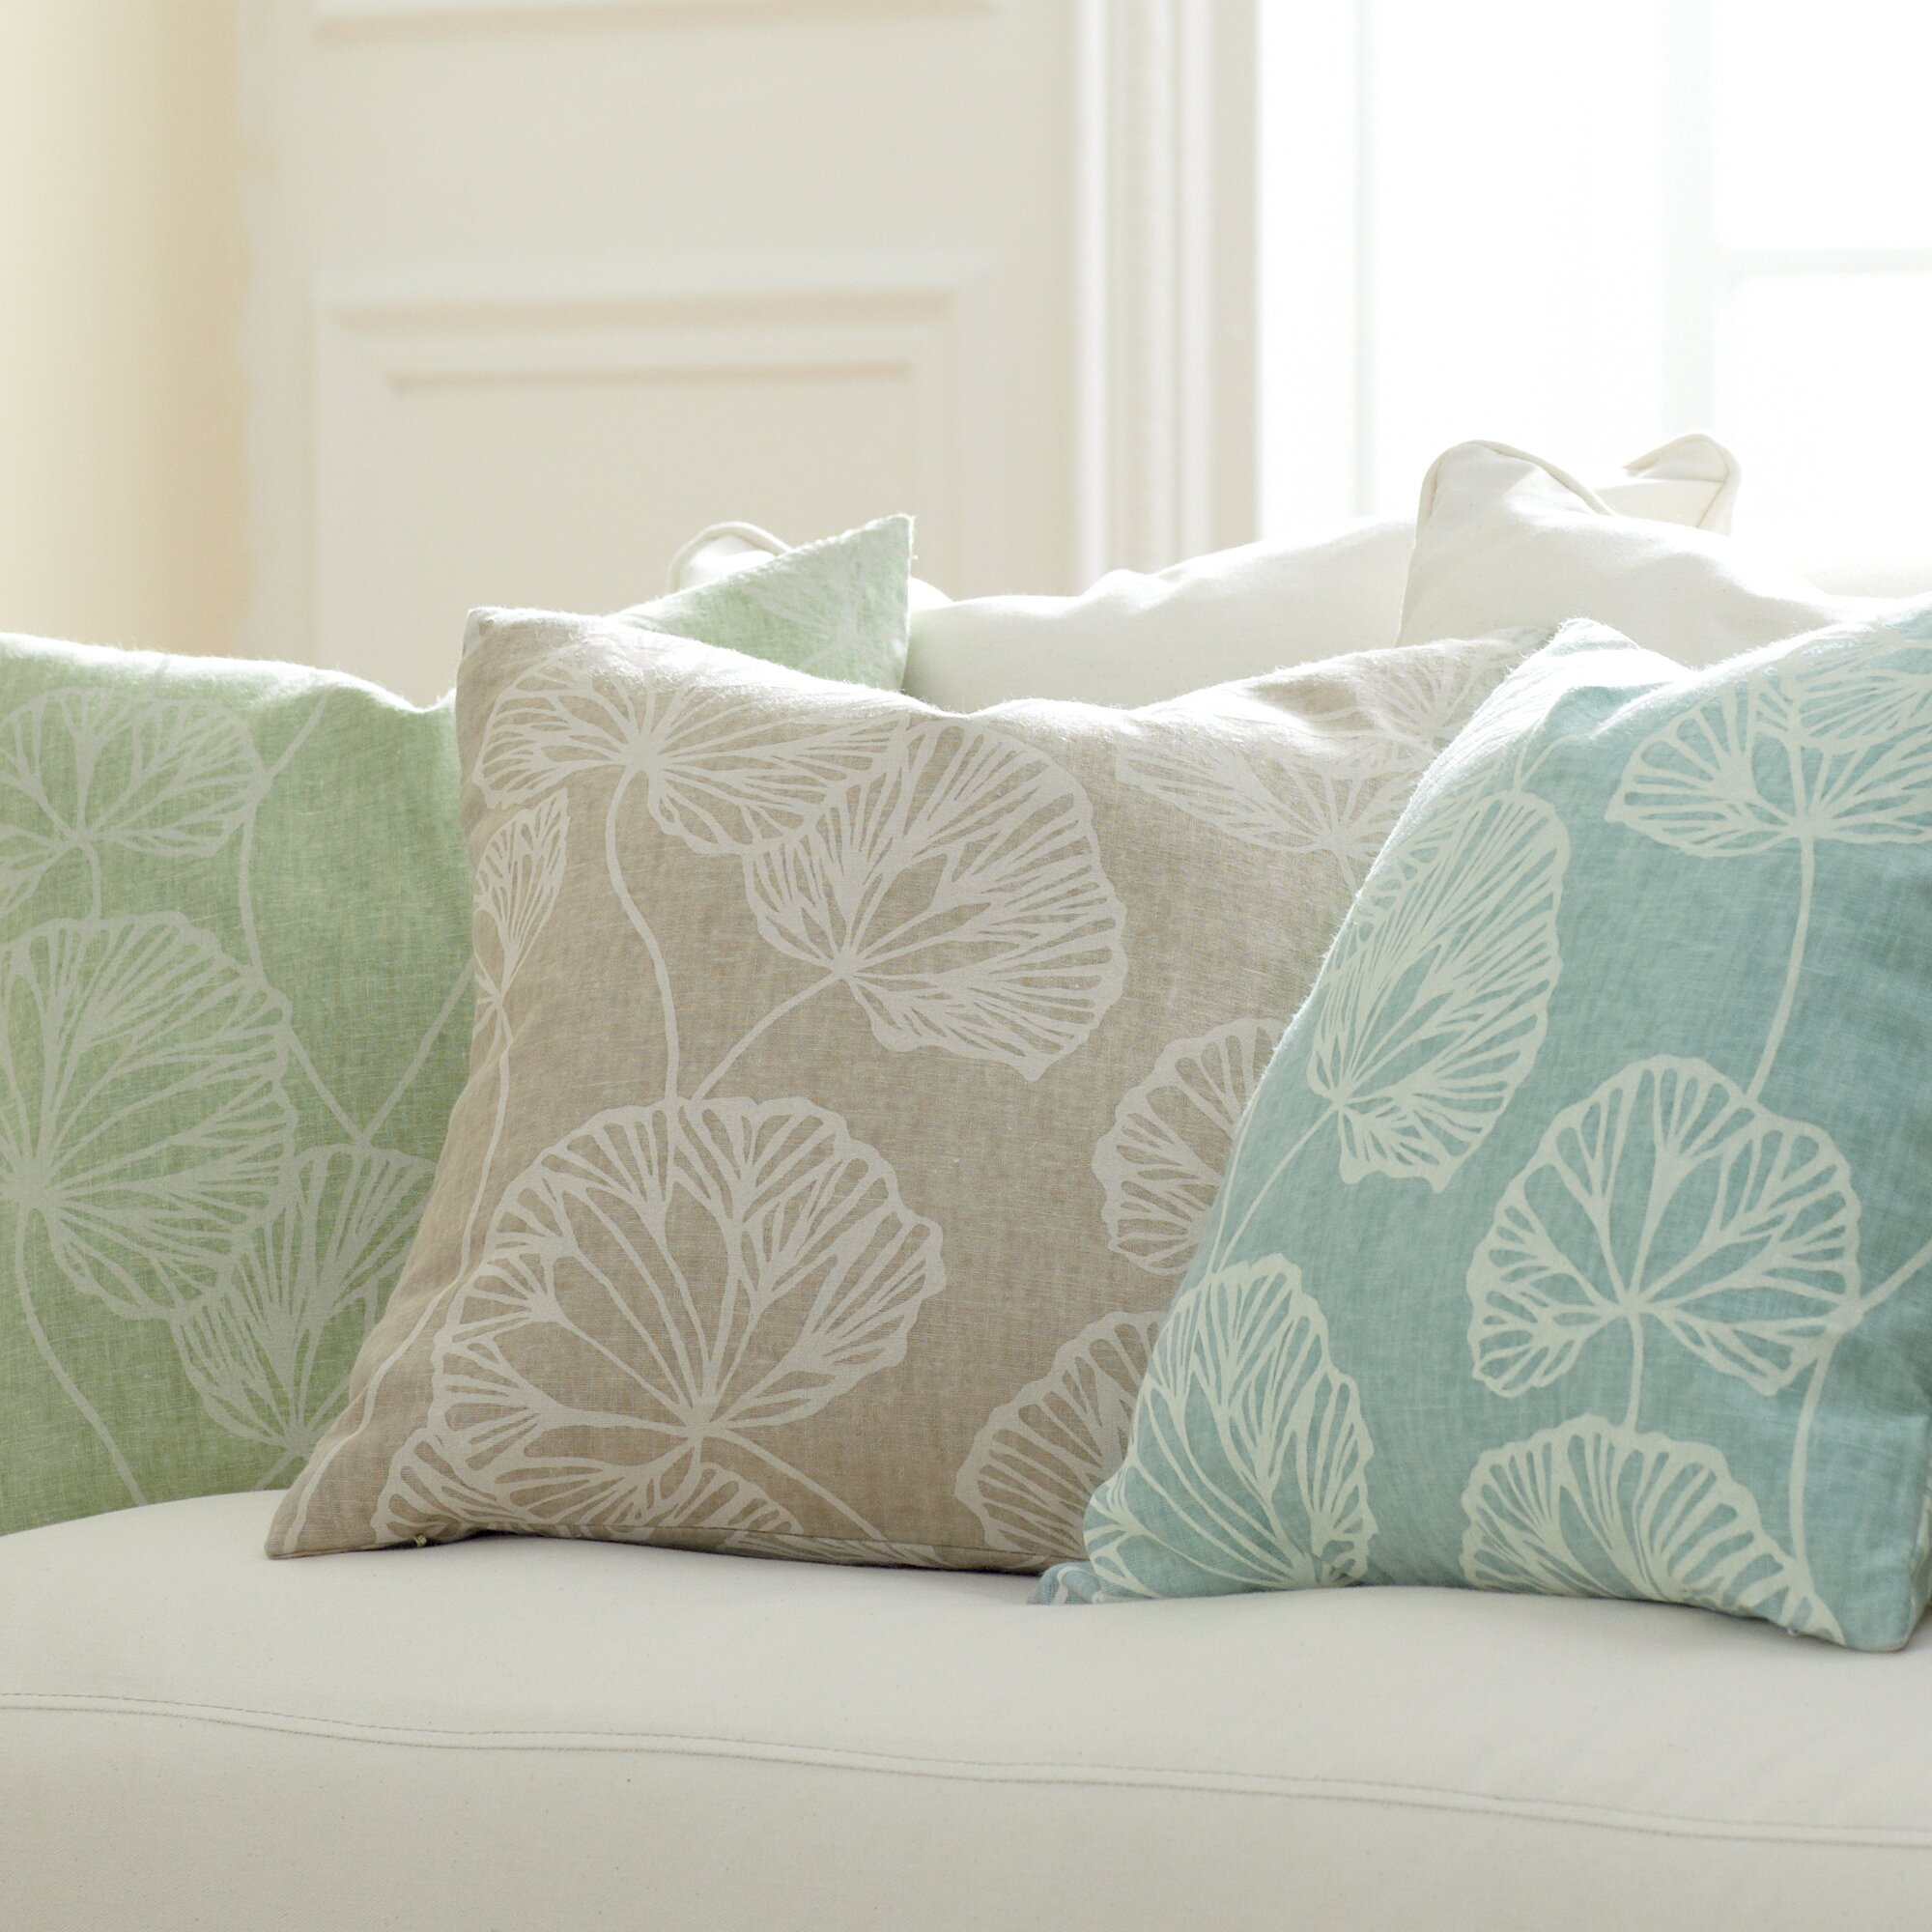 Wayfair Decorative Pillow Covers : Birch Lane Gwendolyn Pillow Cover & Reviews Wayfair